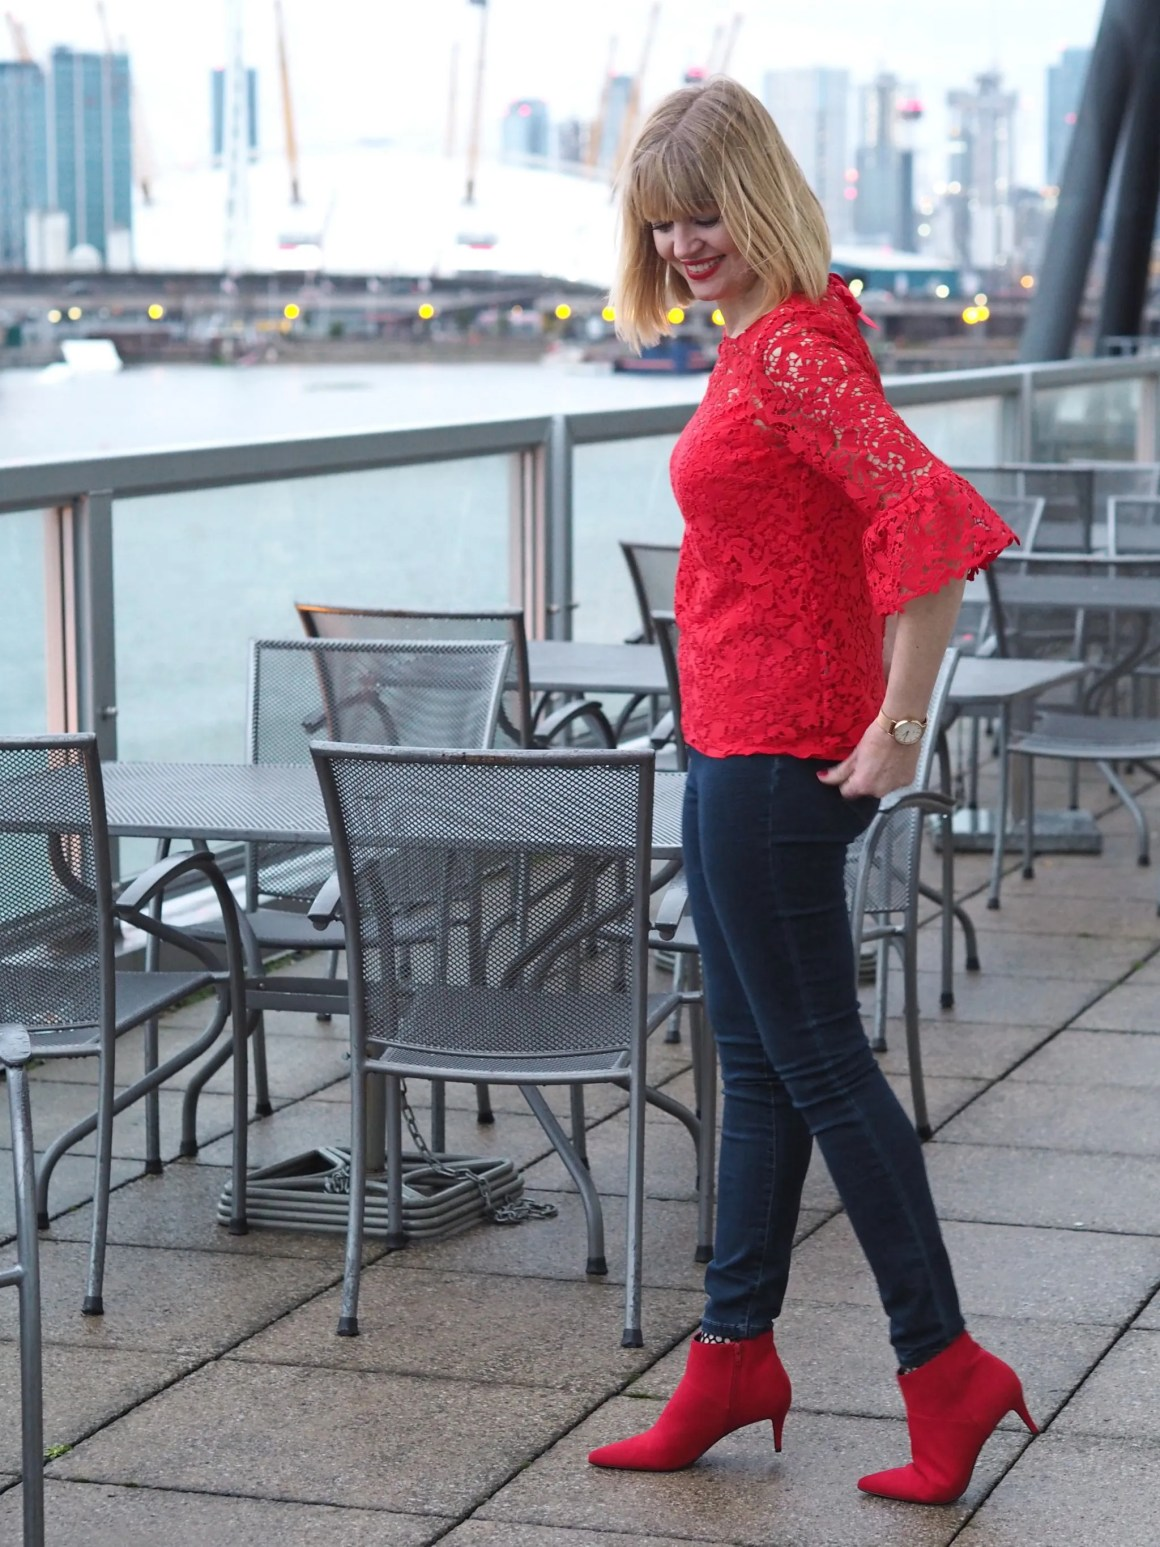 what-lizzy-loves-Boden-red-lace-top-jeans-boots-Millenium-Dome